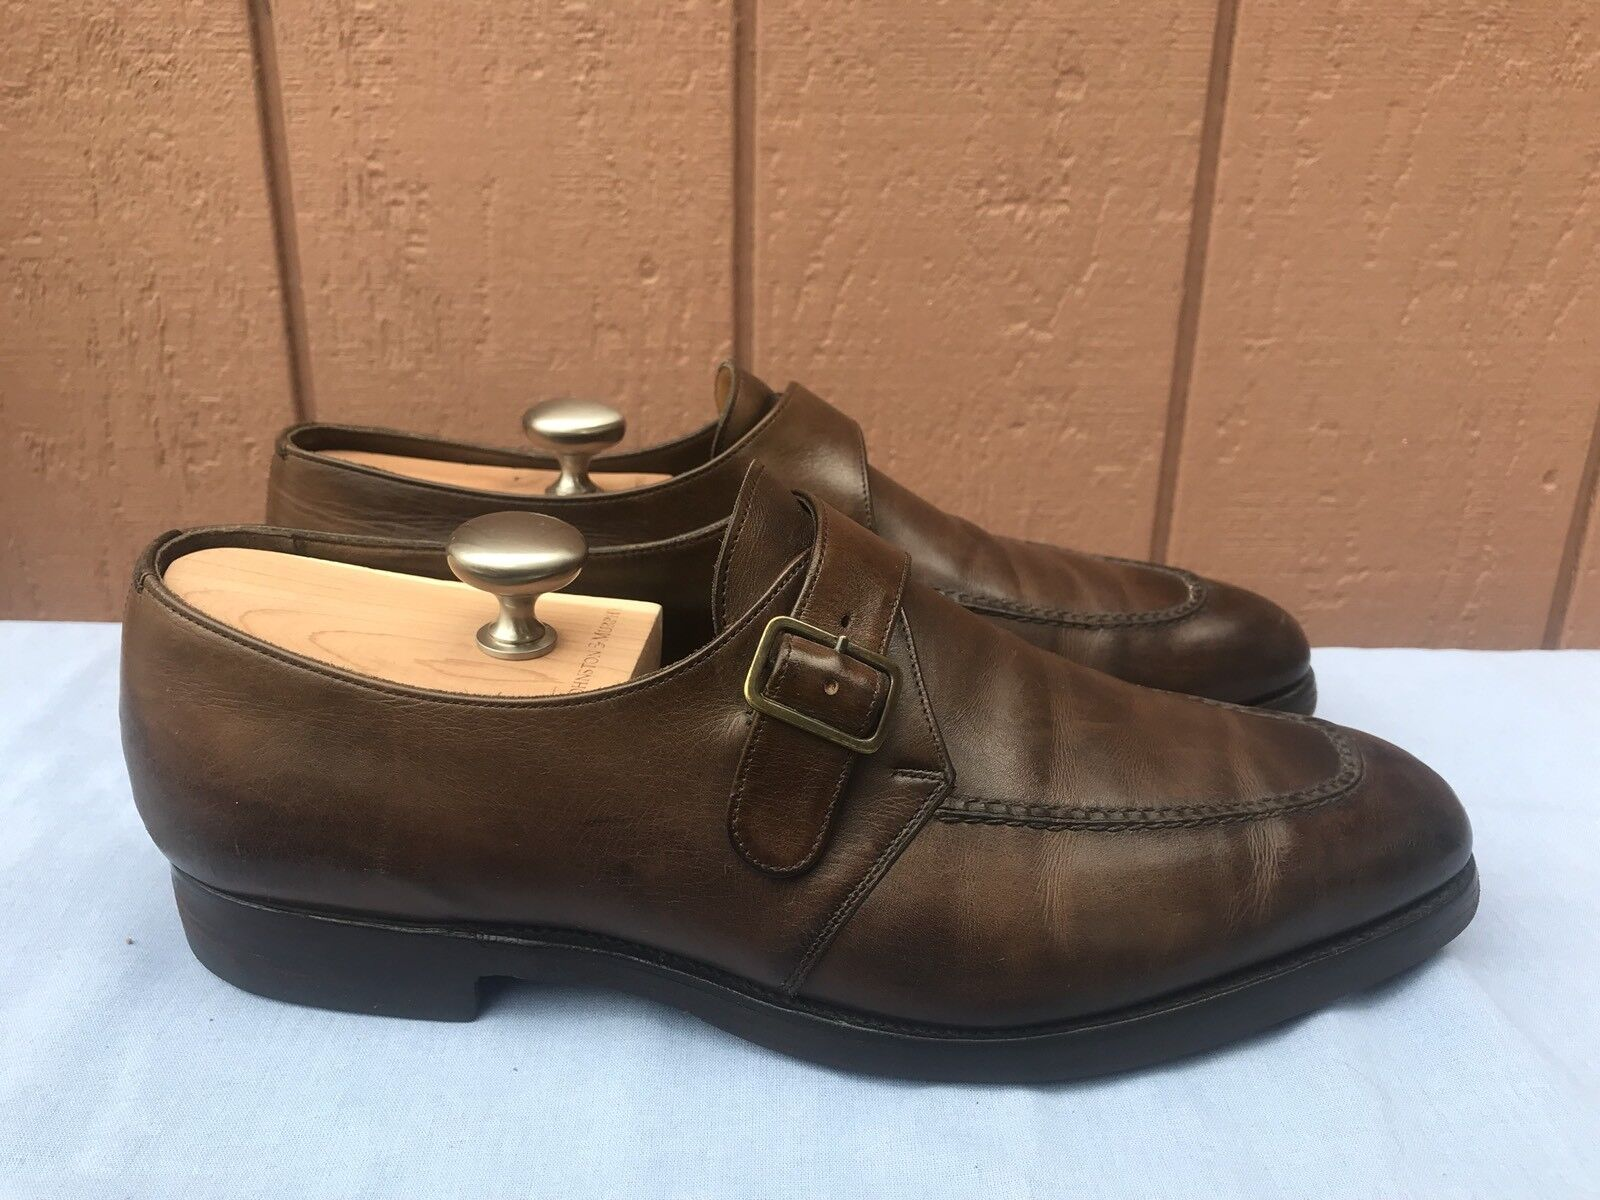 RARE EUC EDWARD VERDE Monk Strap Handsewn Leather Brown Split Toe US 10.5D  1425